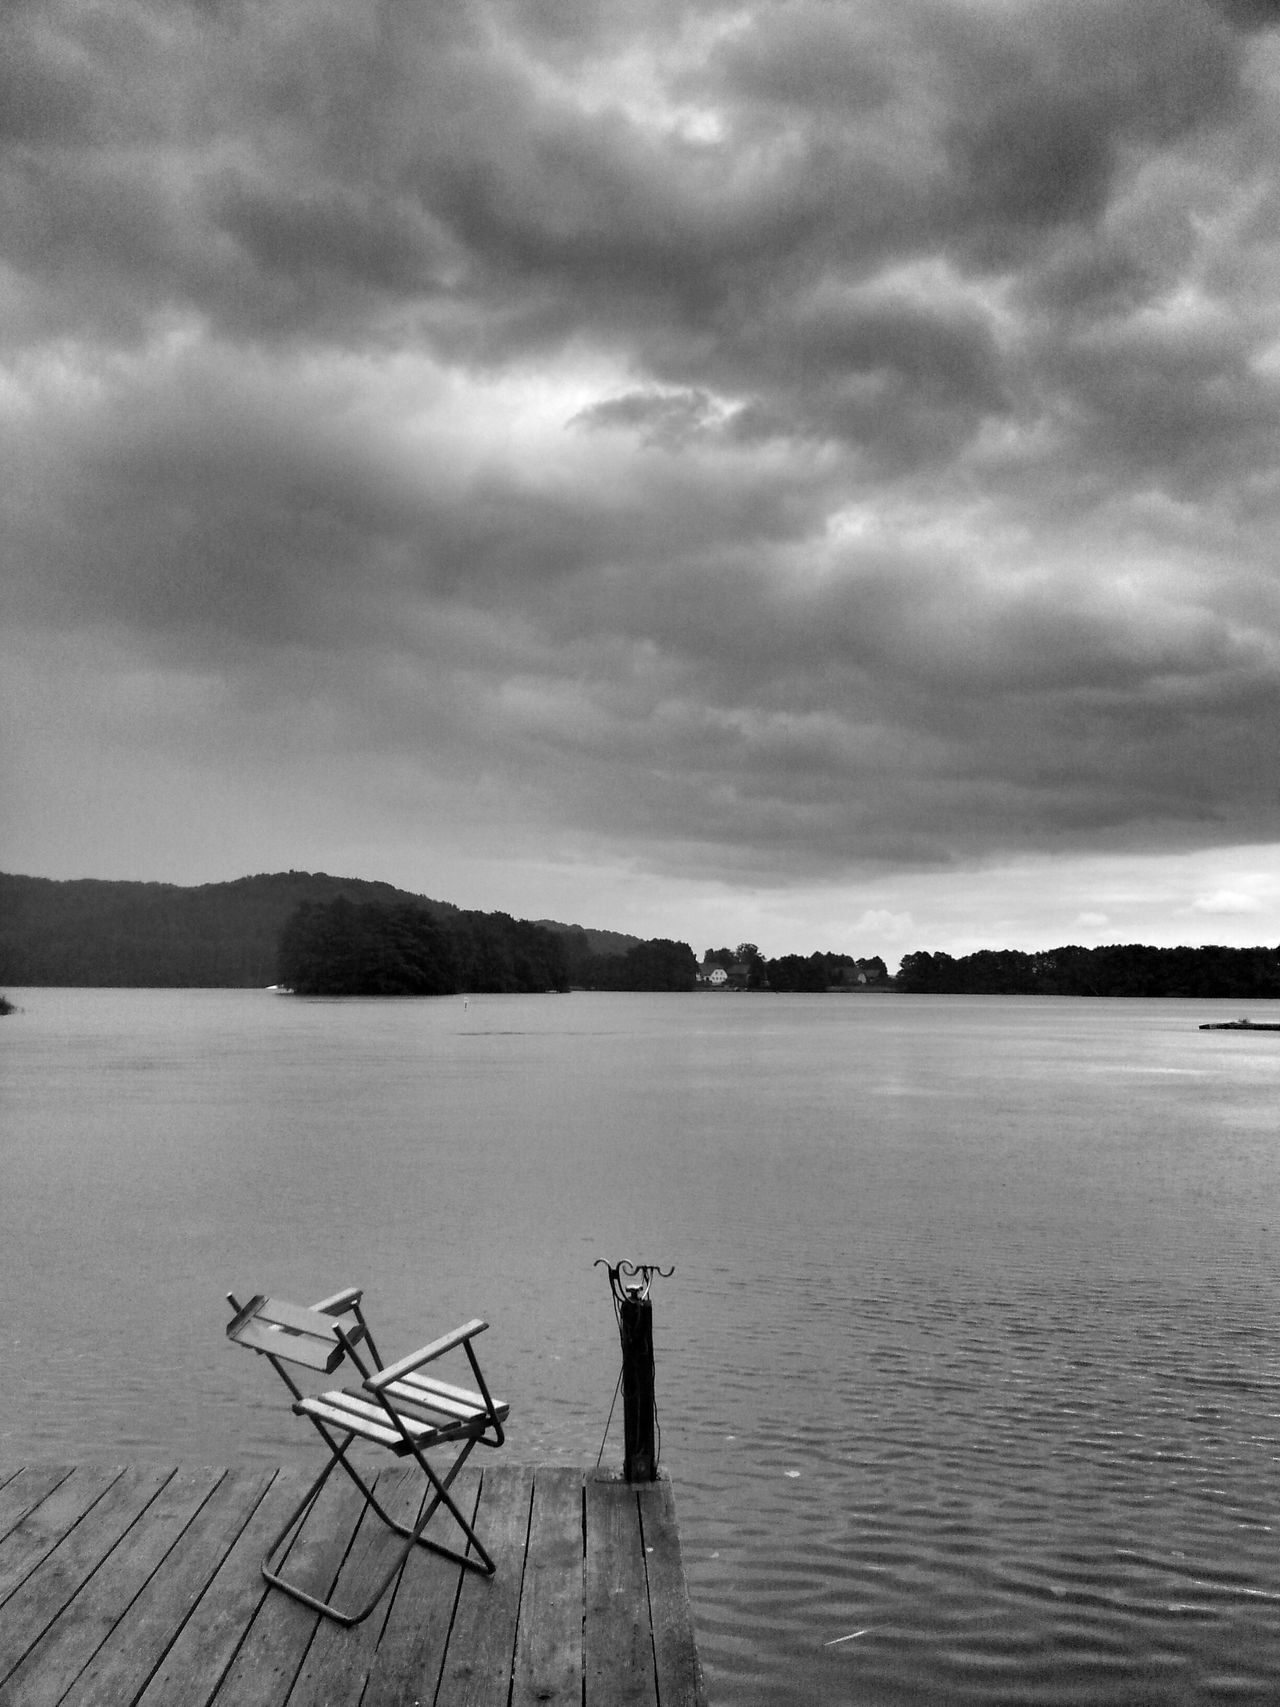 Rain. EyeEm Best Shots - Black + White Landscape_Collection Eye4photography  Bws_worldwide